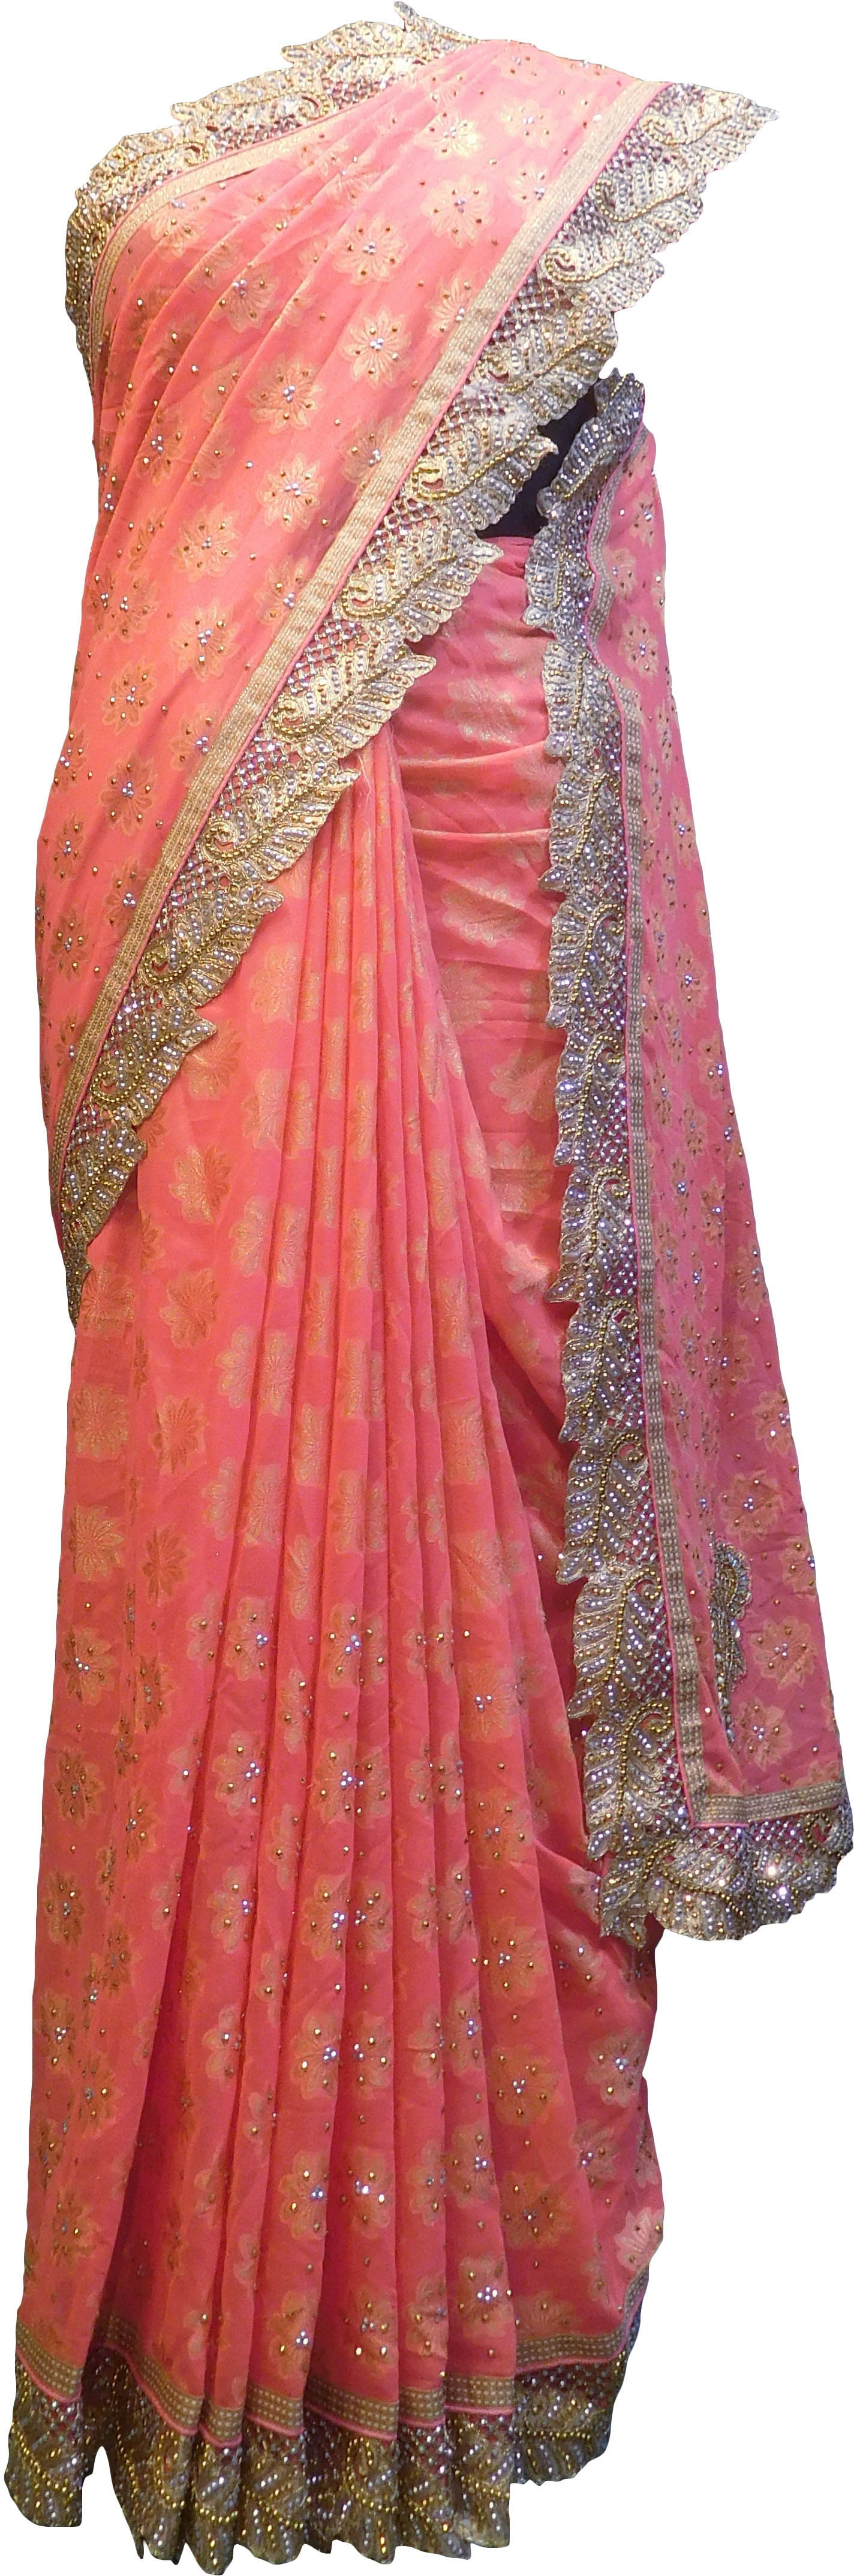 SMSAREE Peach Designer Wedding Partywear Georgette Stone Zari Beads & Pearl Hand Embroidery Work Bridal Saree Sari With Blouse Piece F078